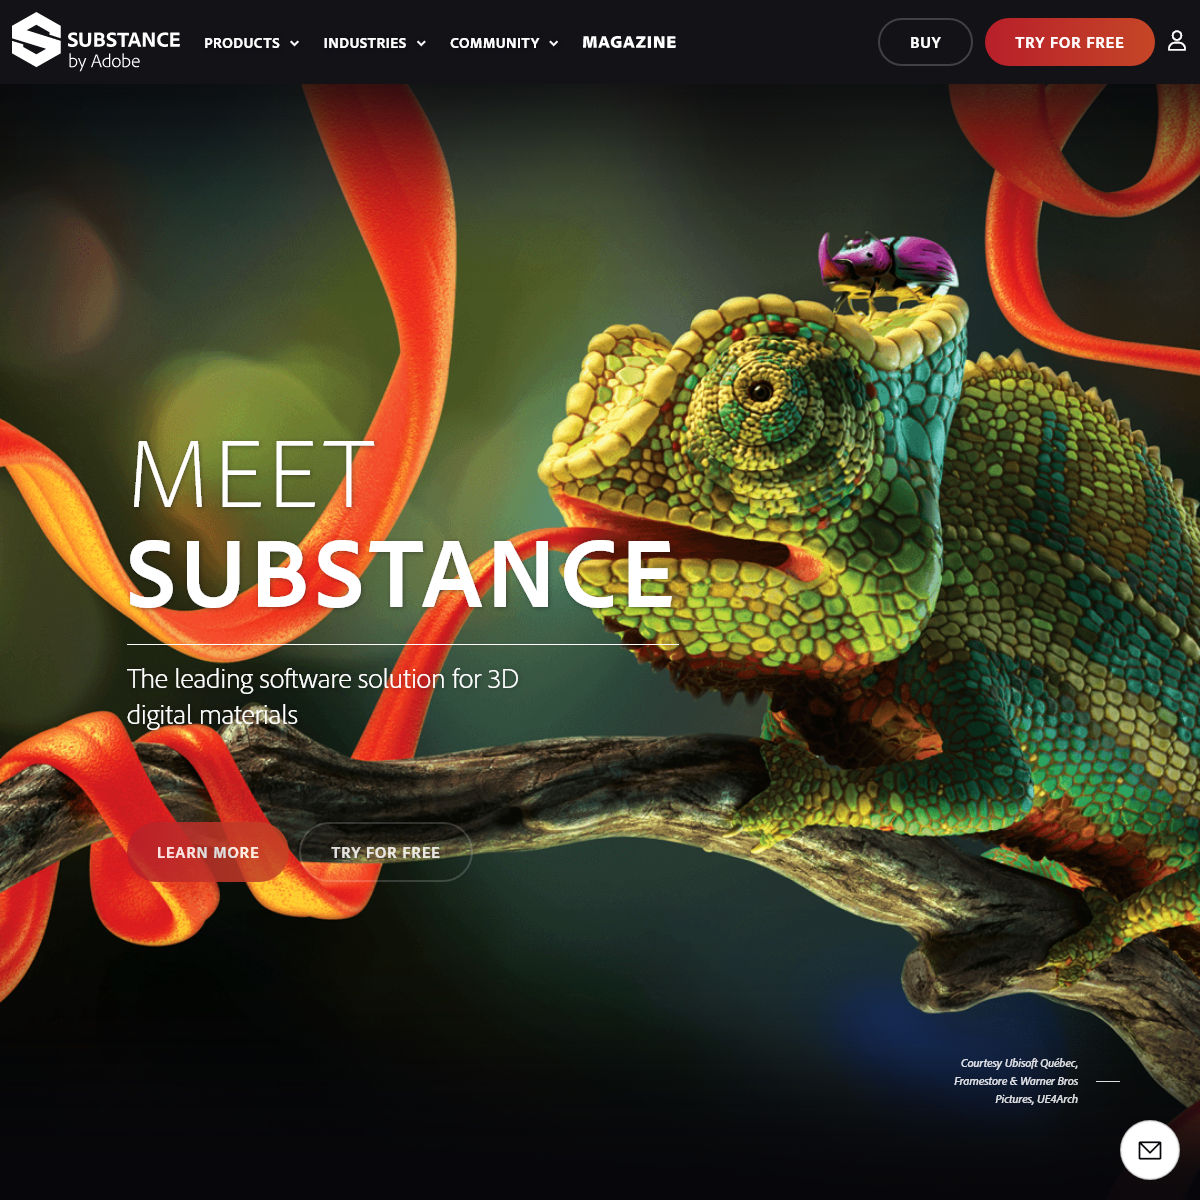 Substance - The leading software solution for 3D digital materials